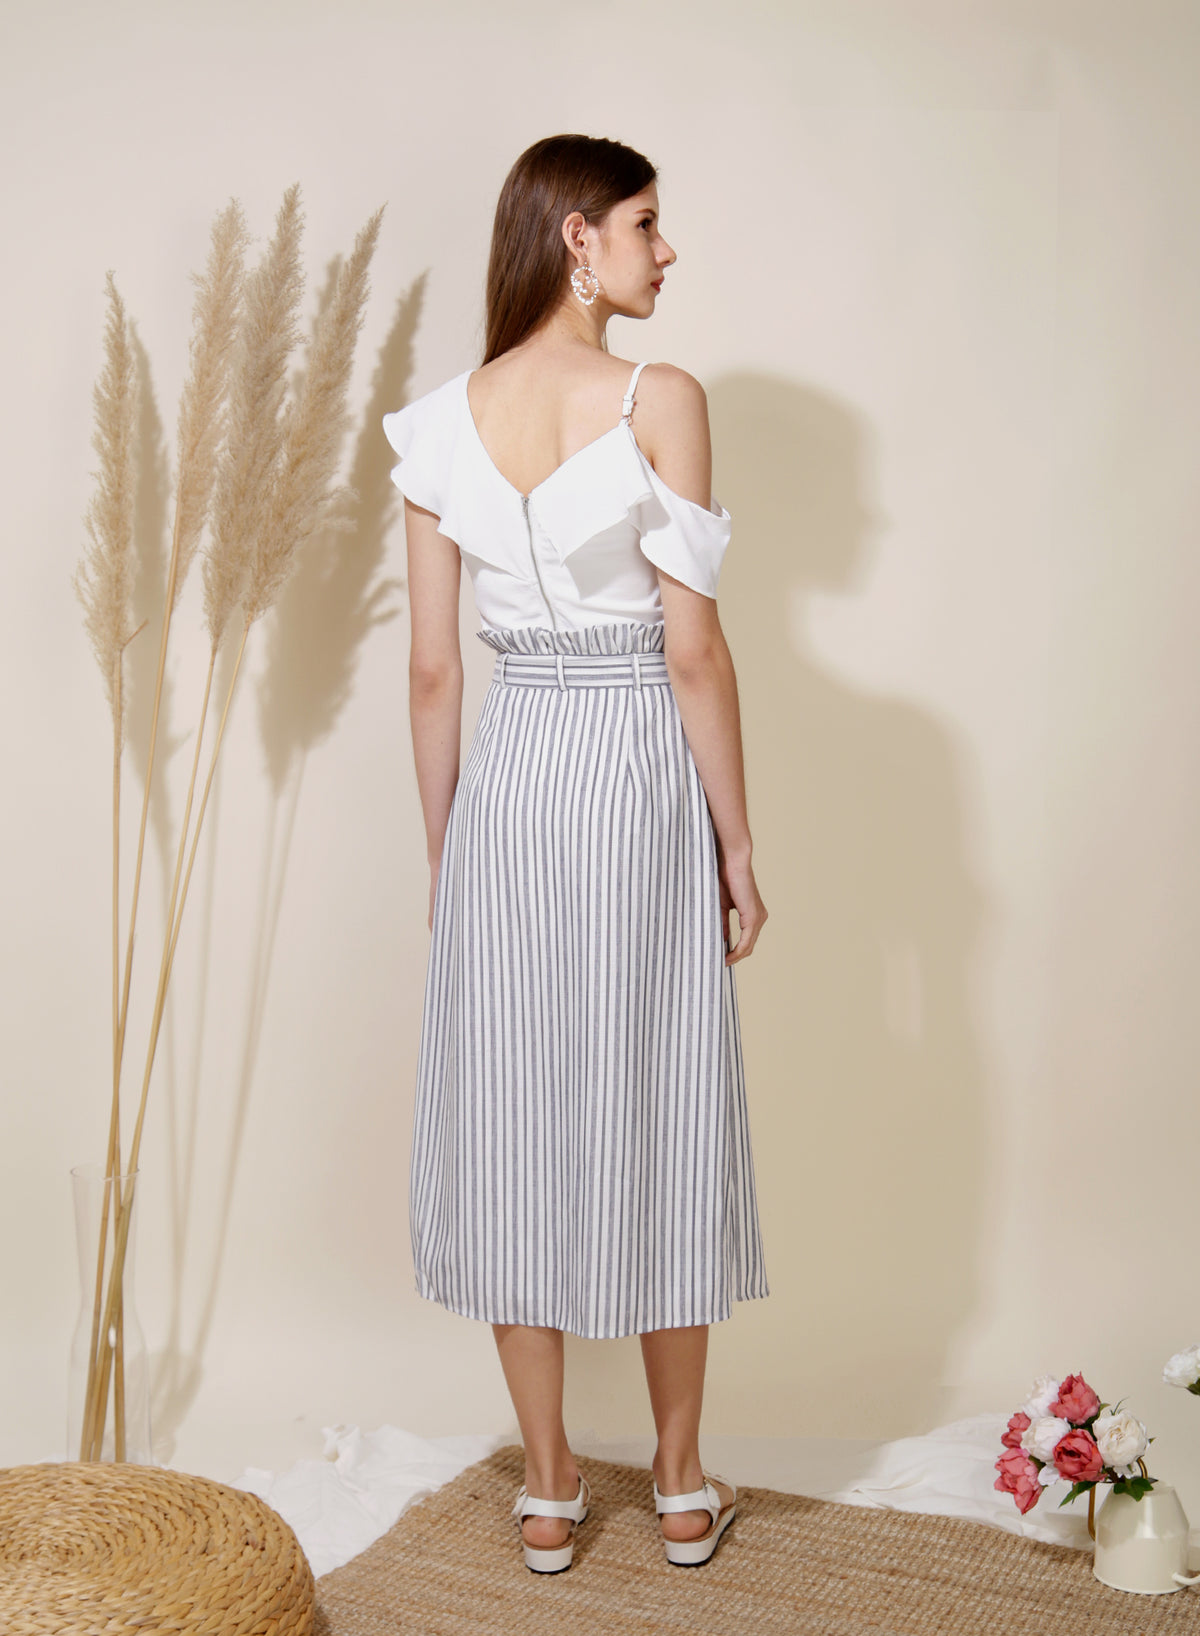 Lighthouse Paperbag Skirt (Navy Stripes)